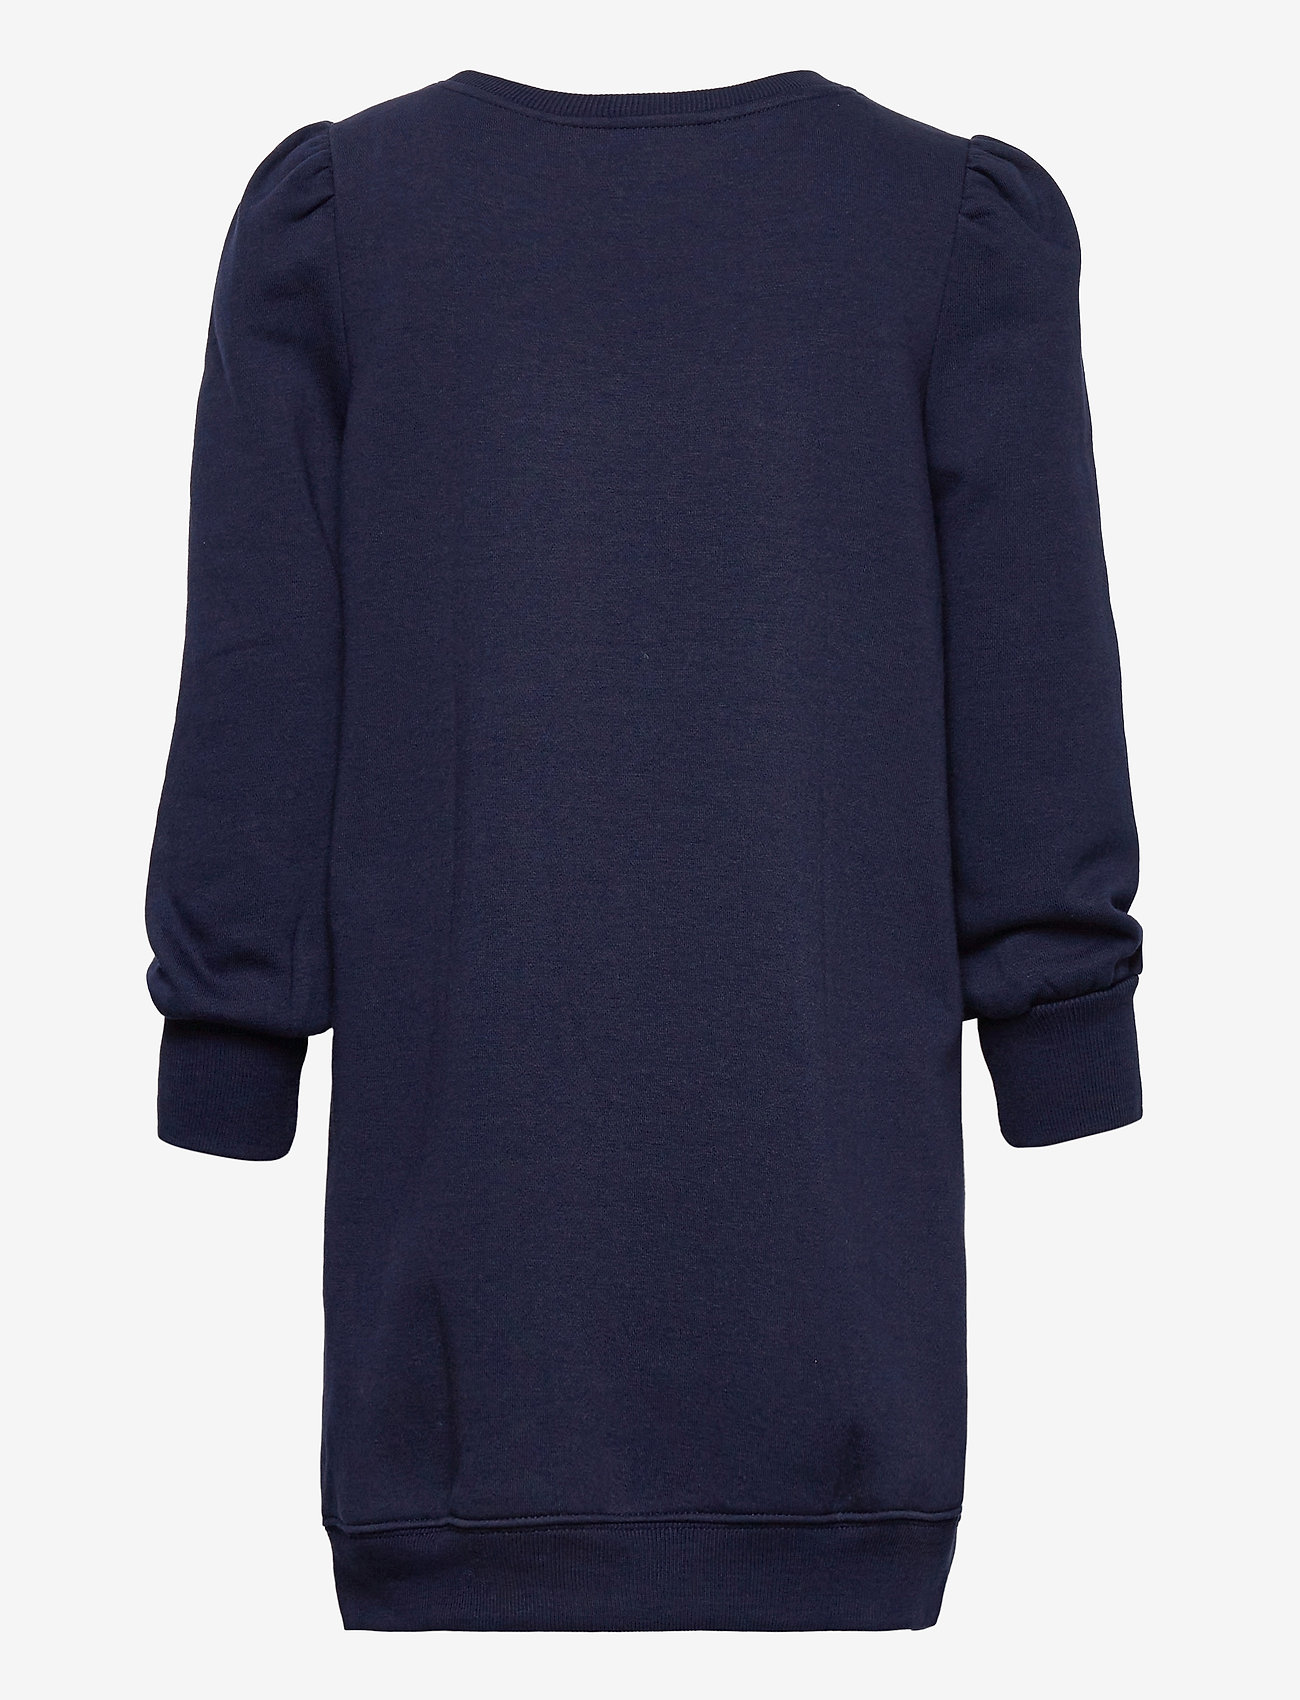 GAP - Kids Sweatshirt Dress - kleider - navy uniform - 1